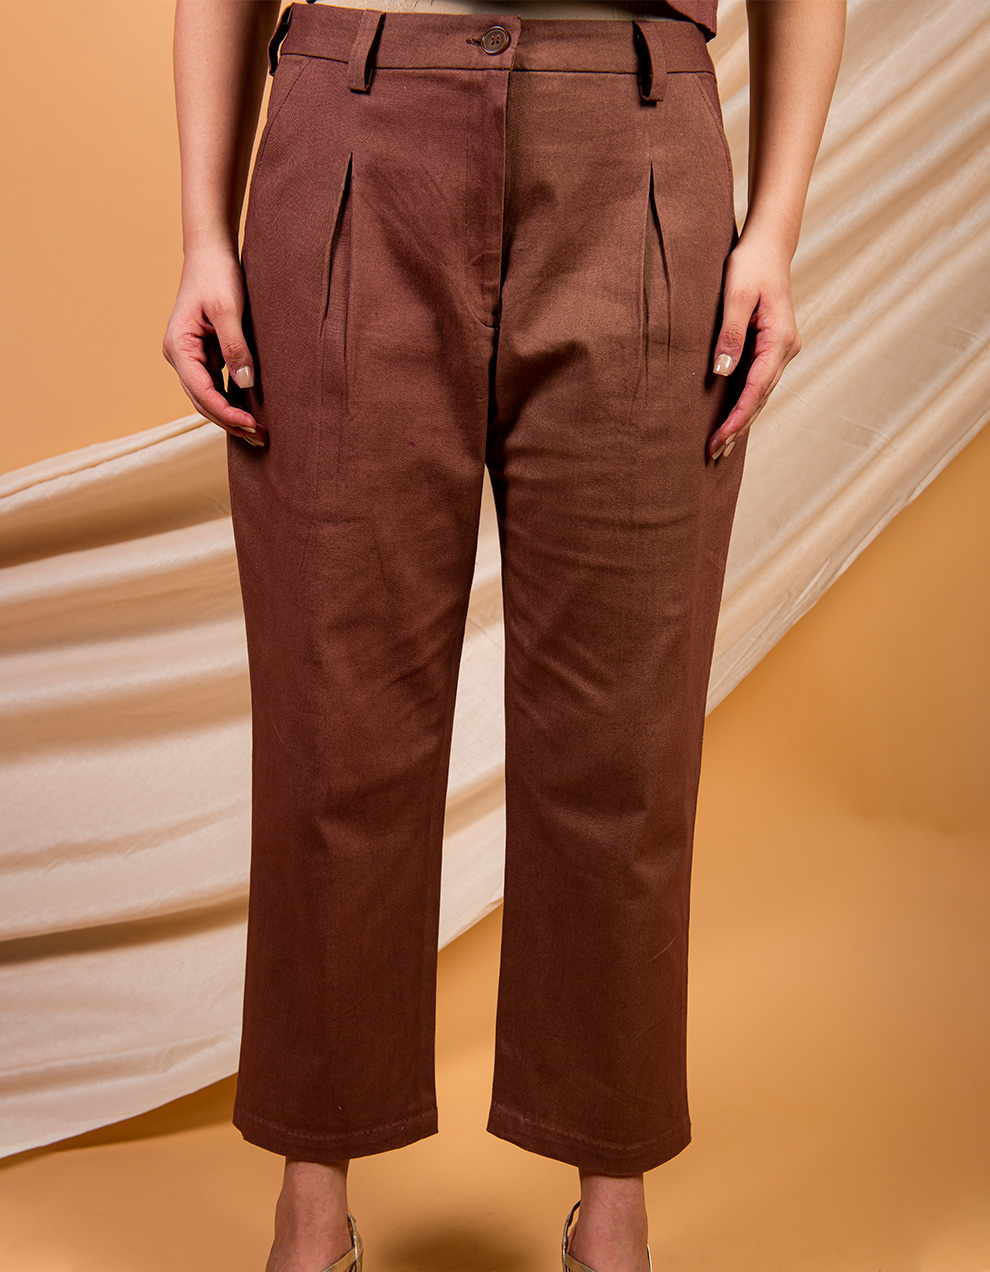 Brown cotton twill pant